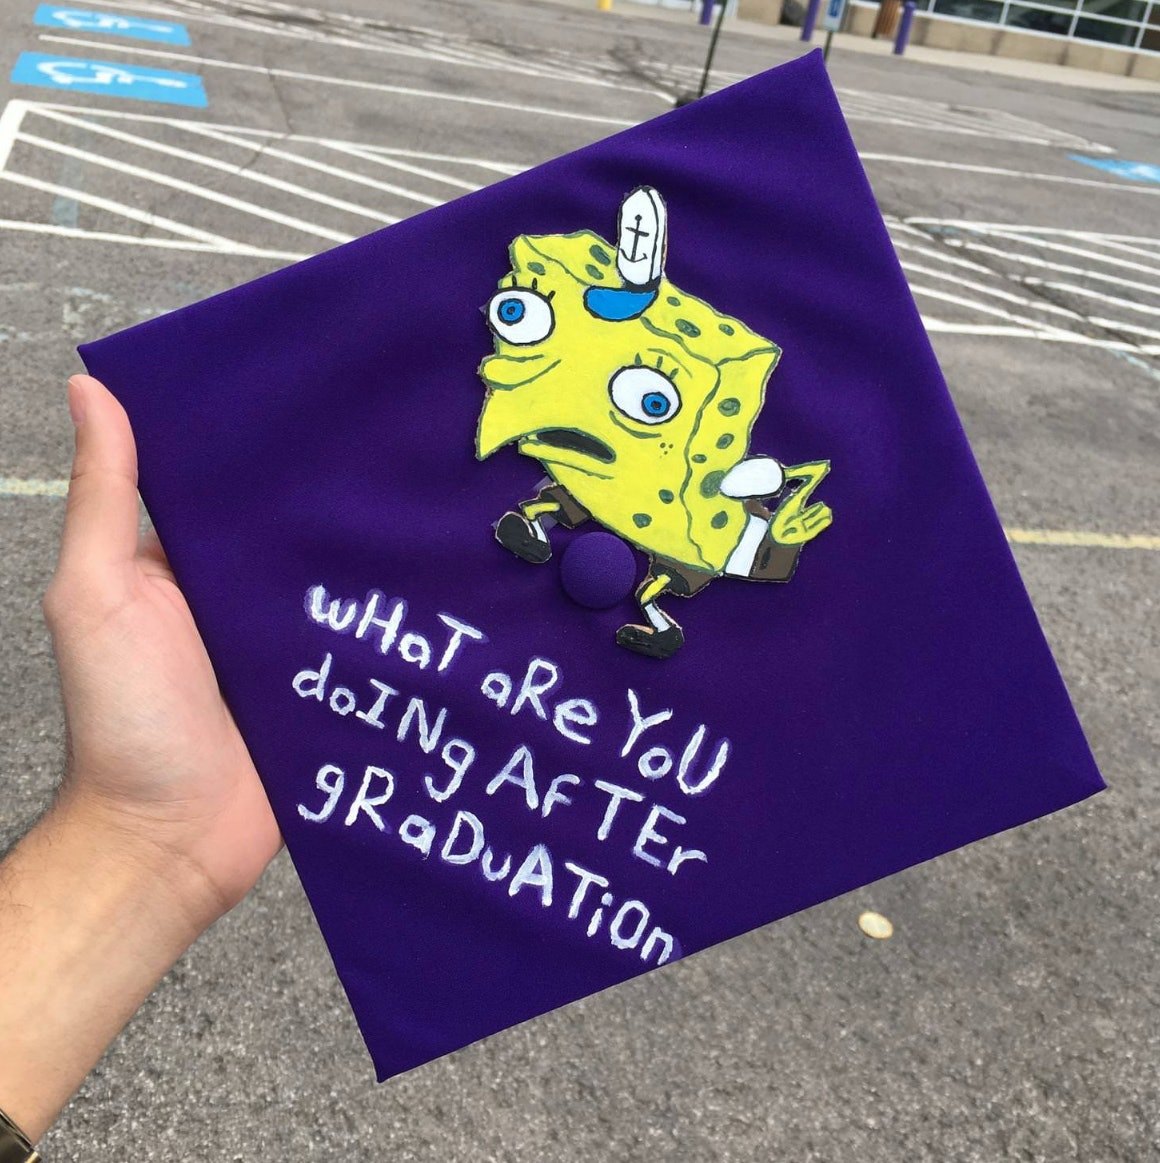 Best Memes To Go On Your Graduation Cap So You Can Laugh